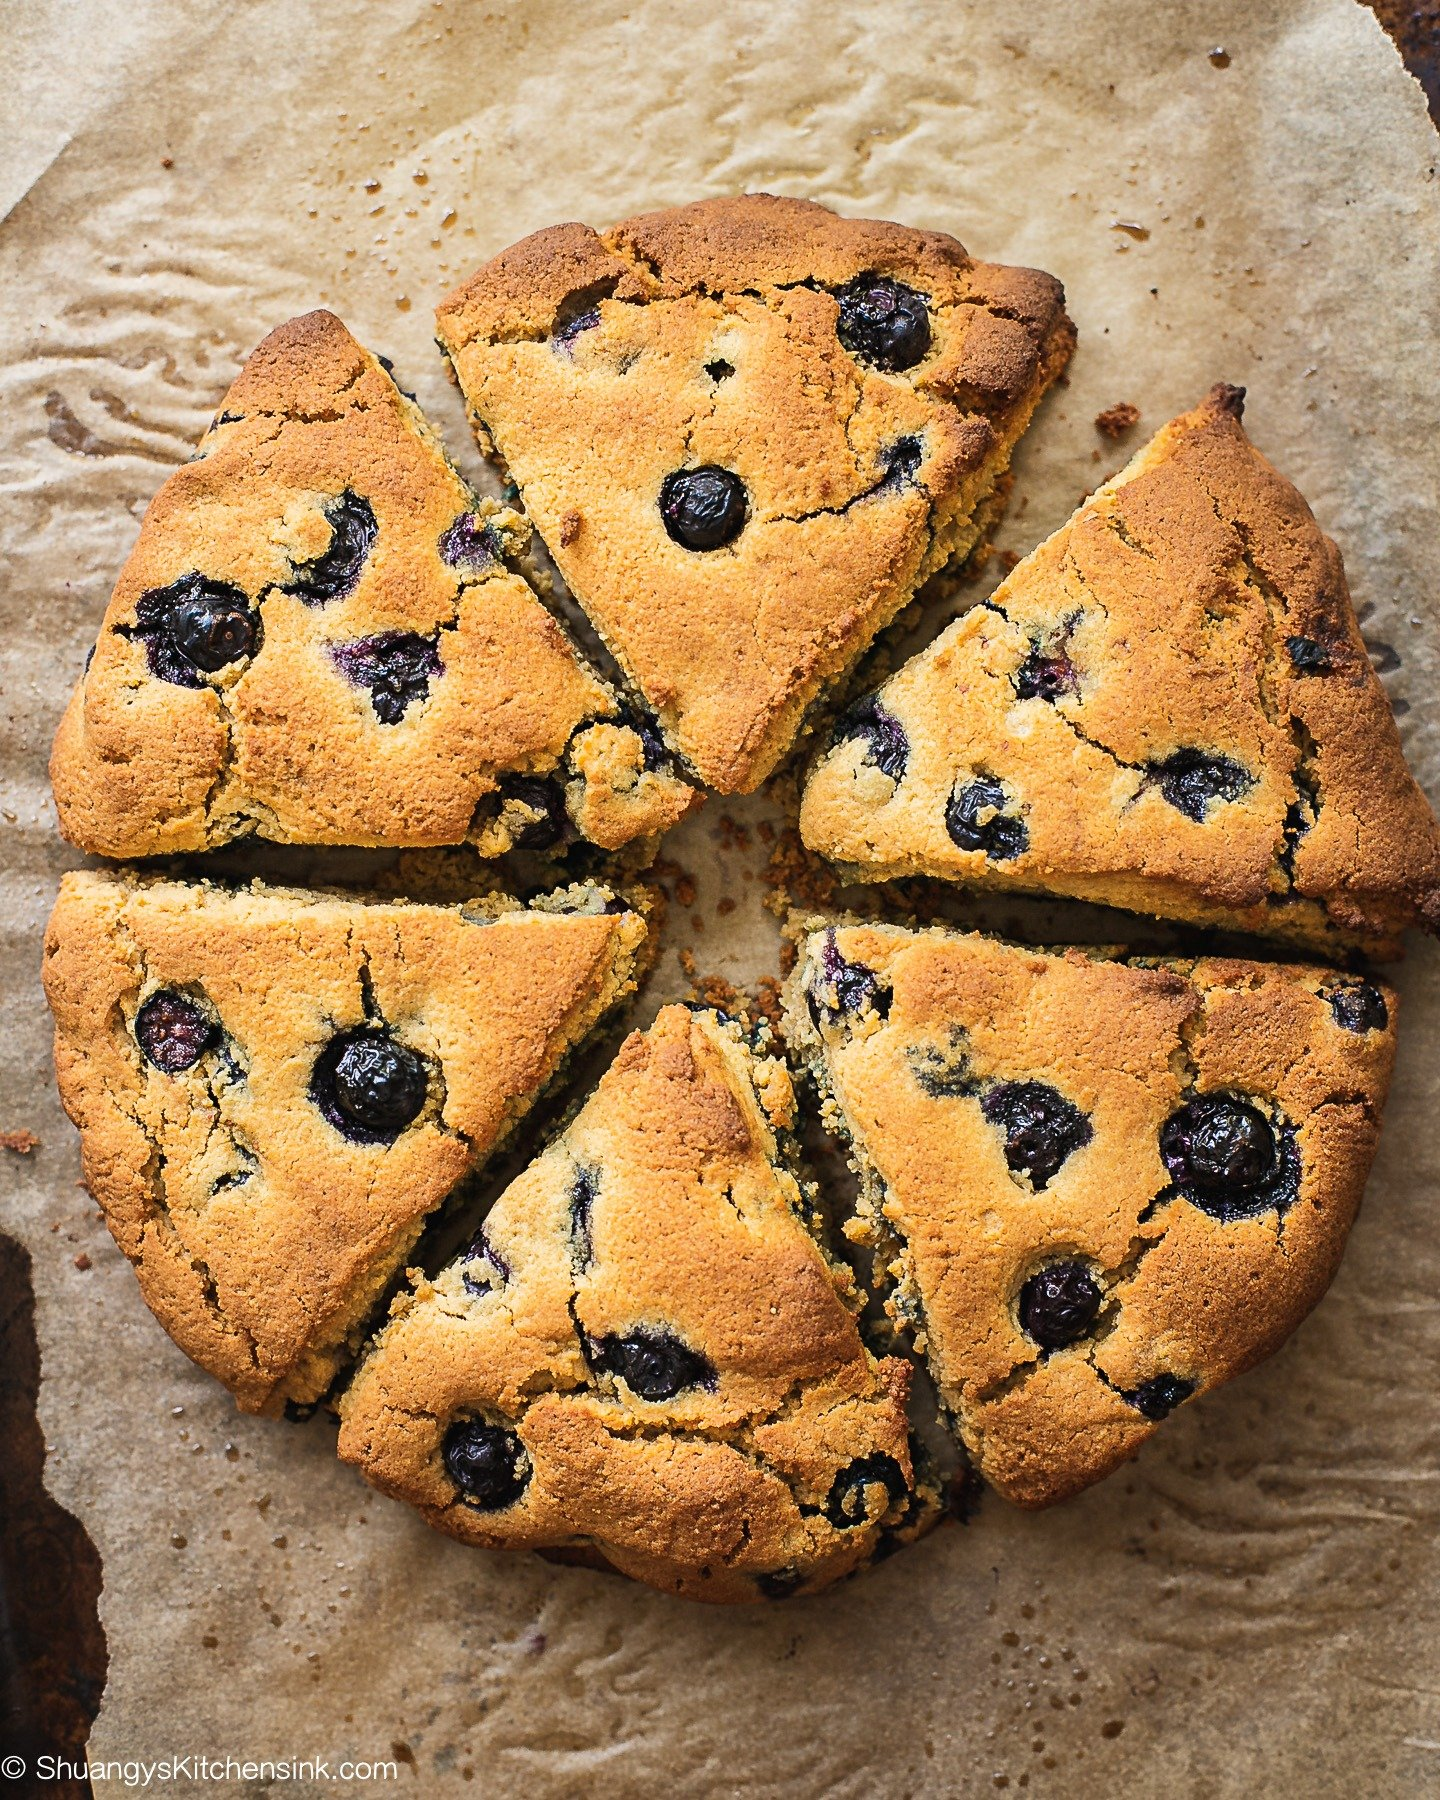 Freshly baked healthy blueberry scones that just cake out of the oven. The outside is golden brown.